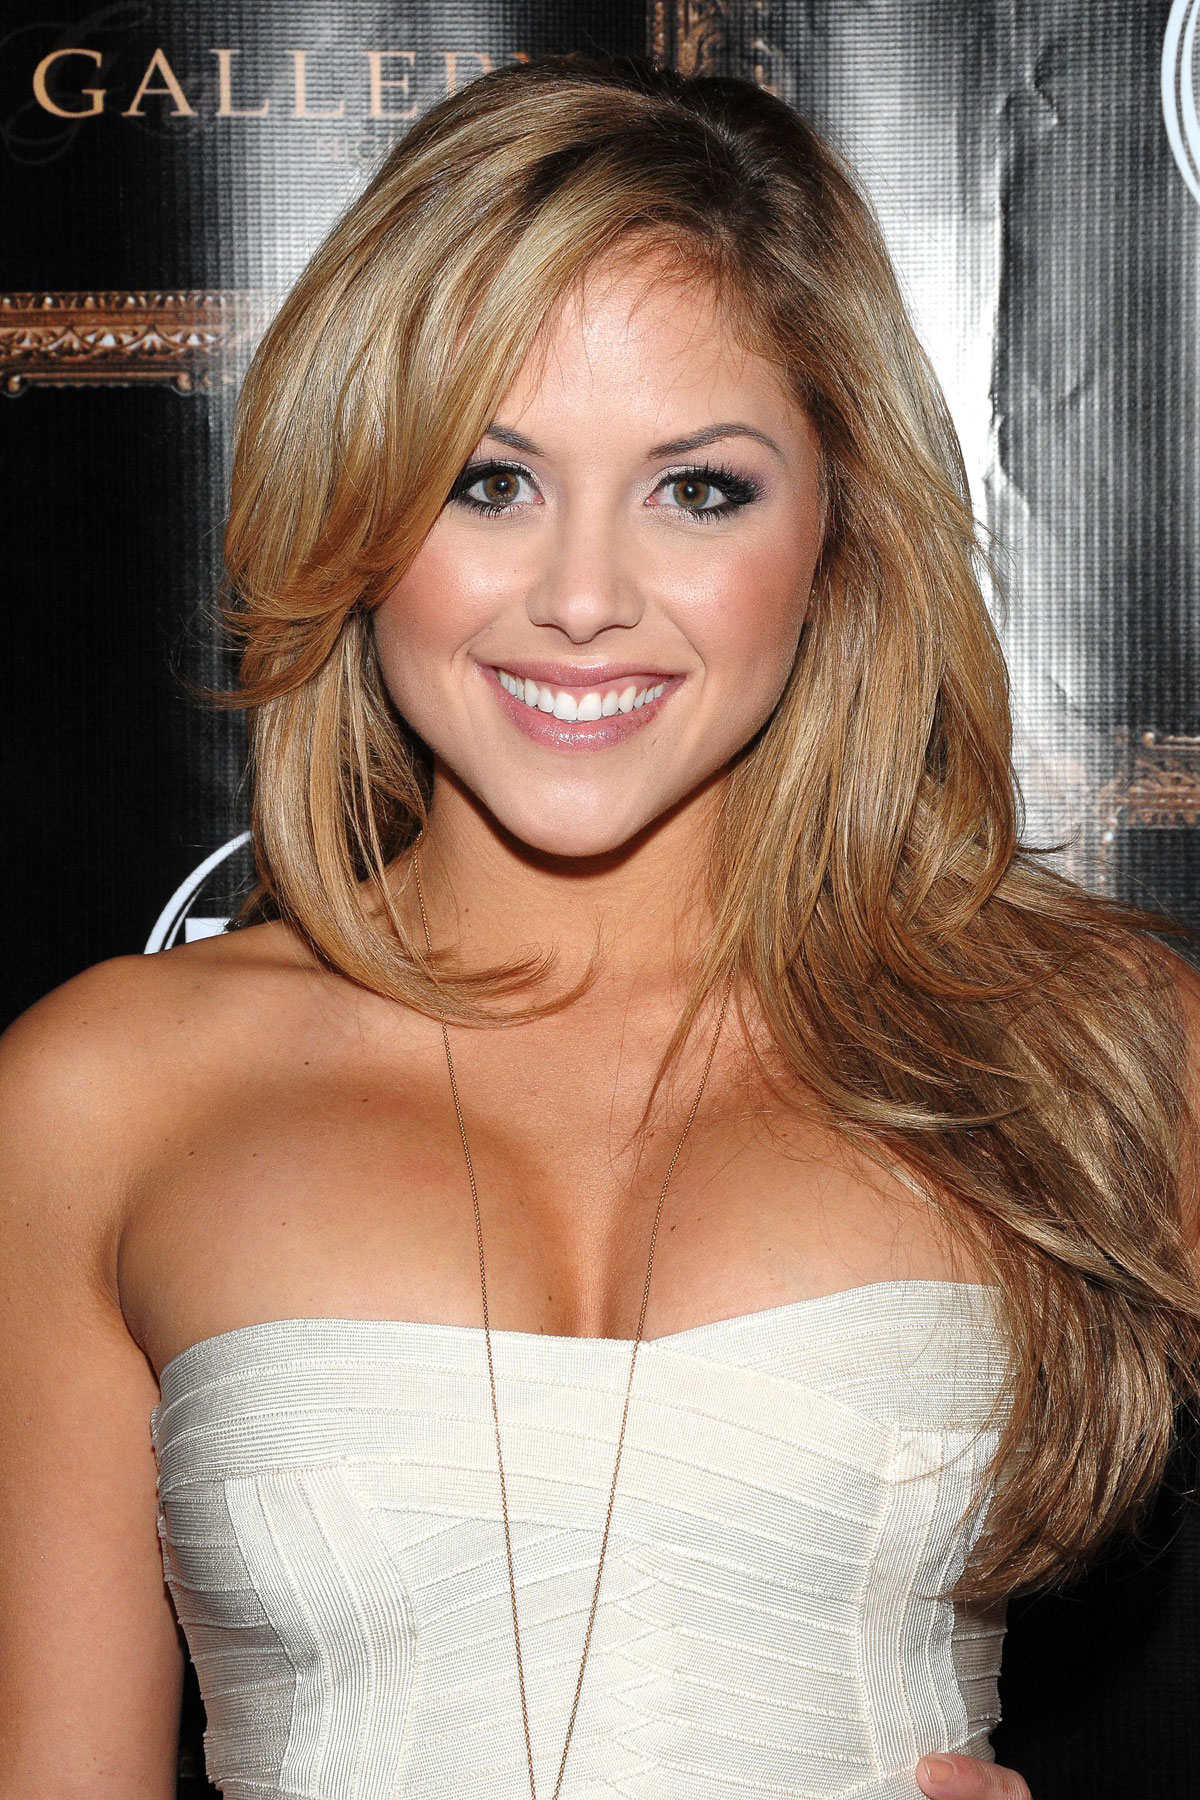 brittney palmer playboy - photo #15